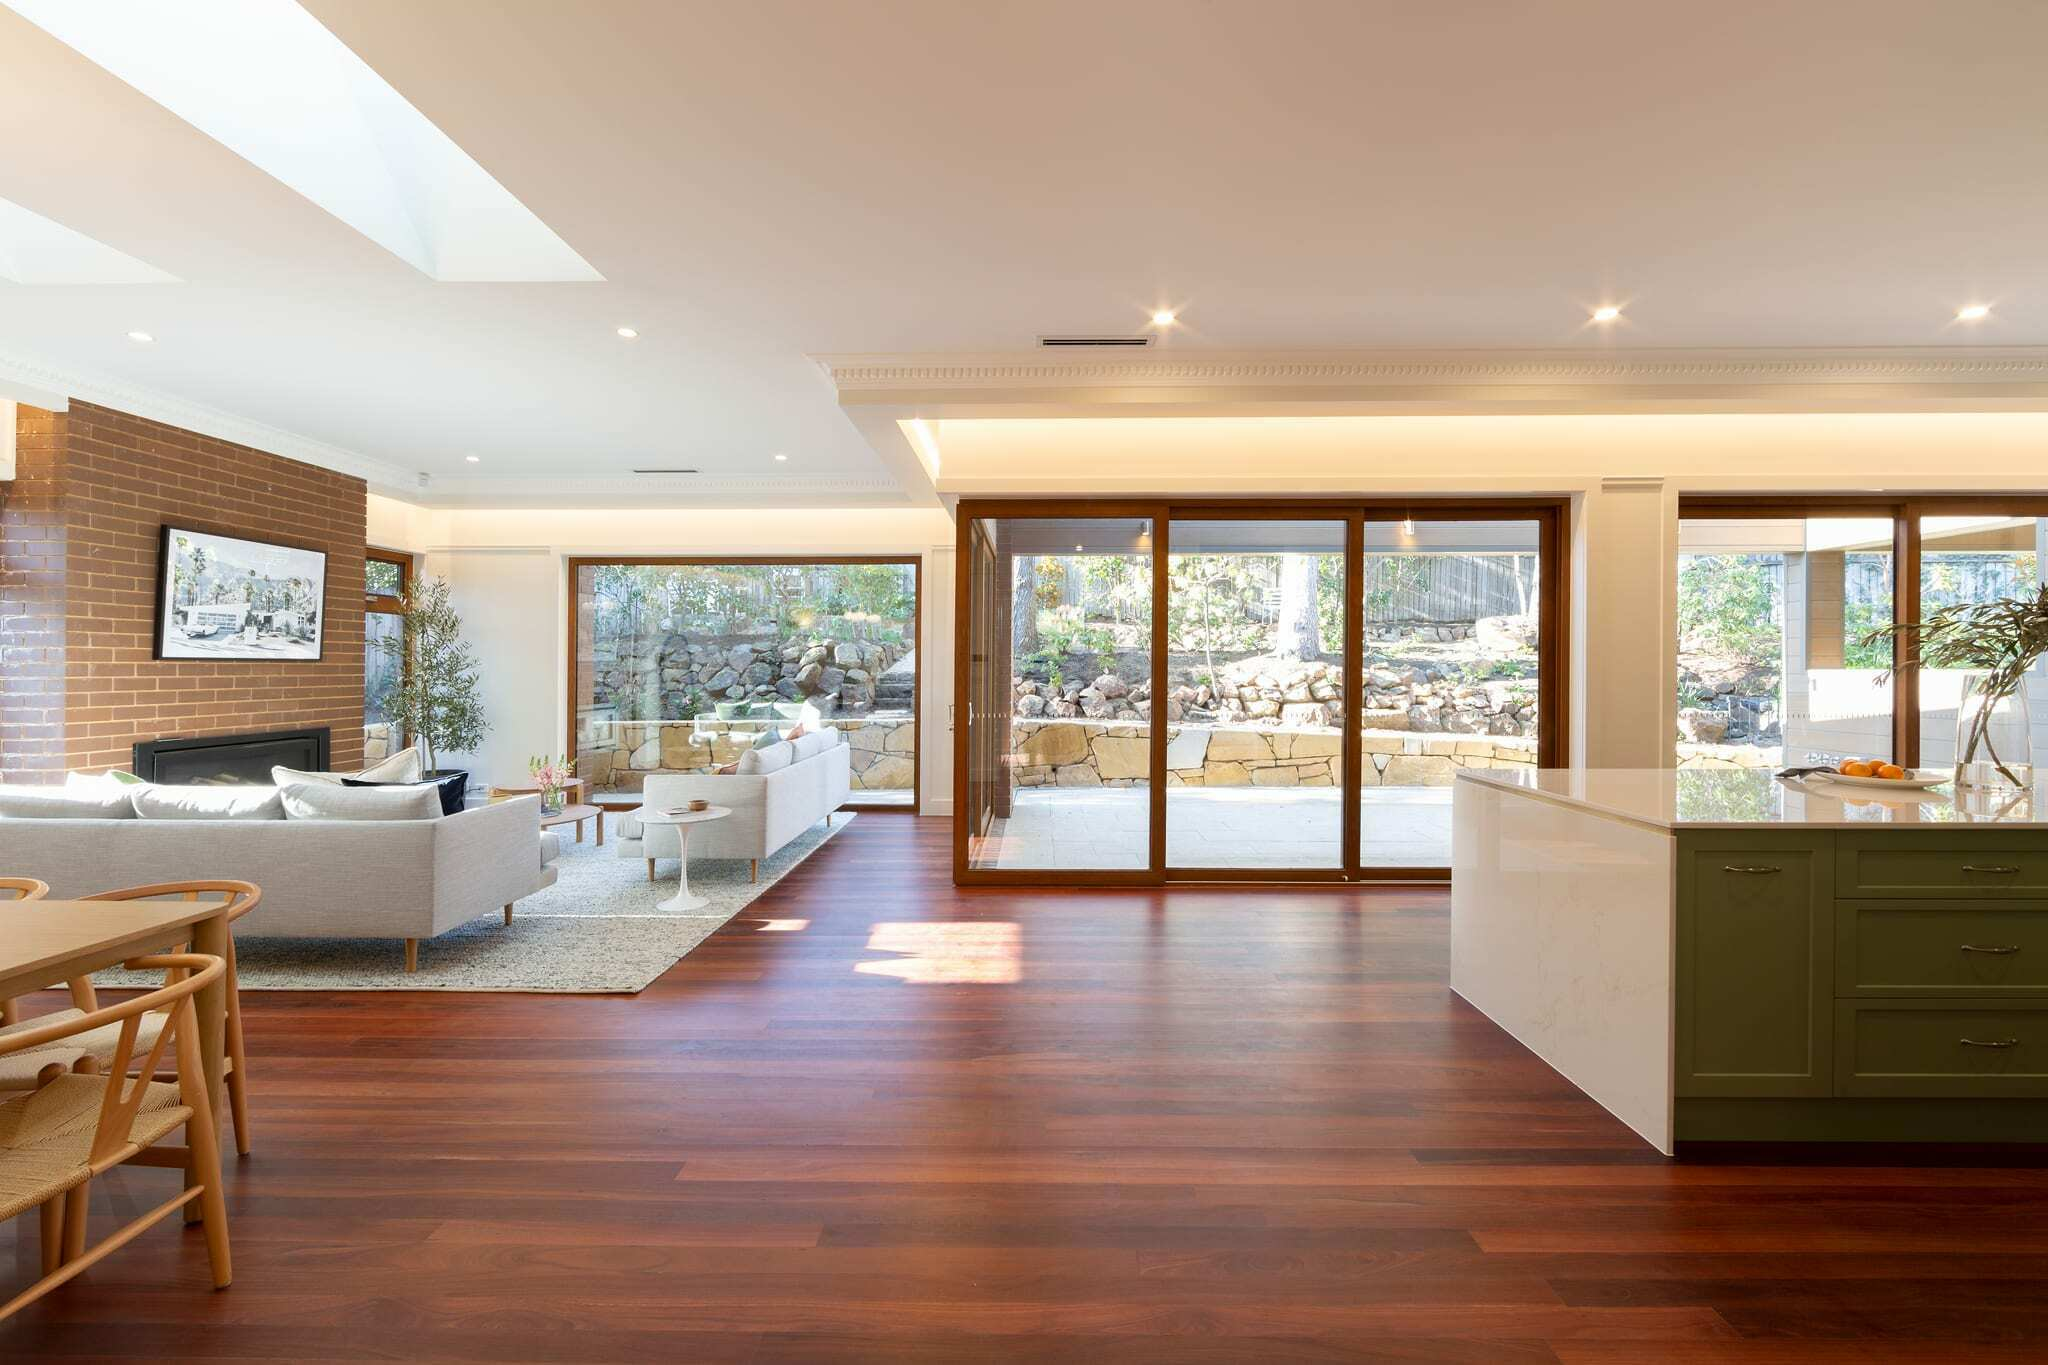 Homes by Howe Canberra builder – Governor Generals' renovation extension – Family room